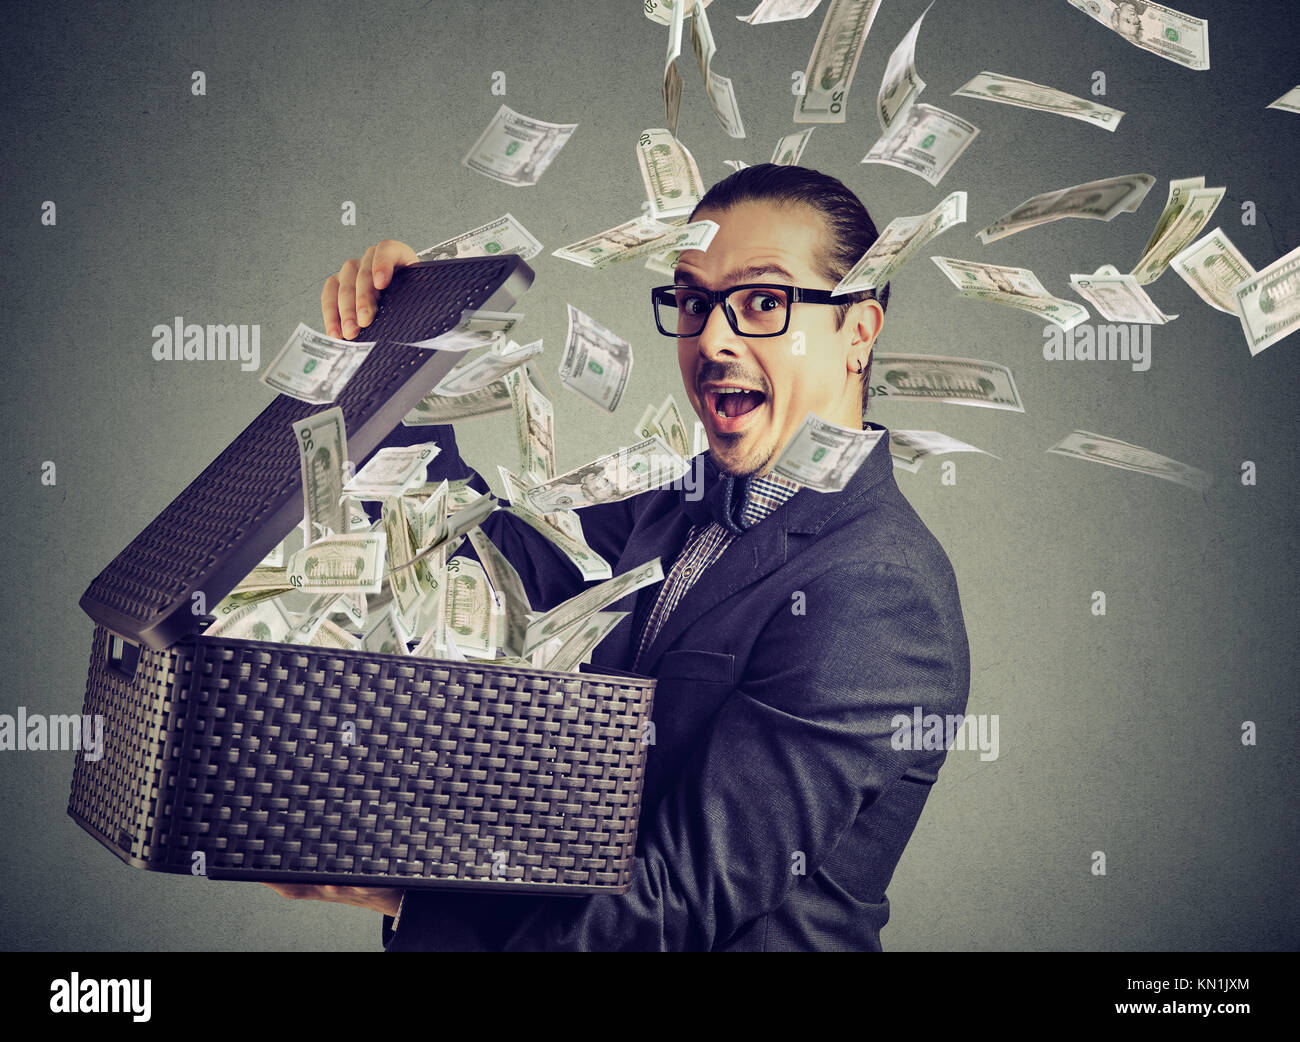 Excited successful business man opening a box with money flying out away - Stock Image